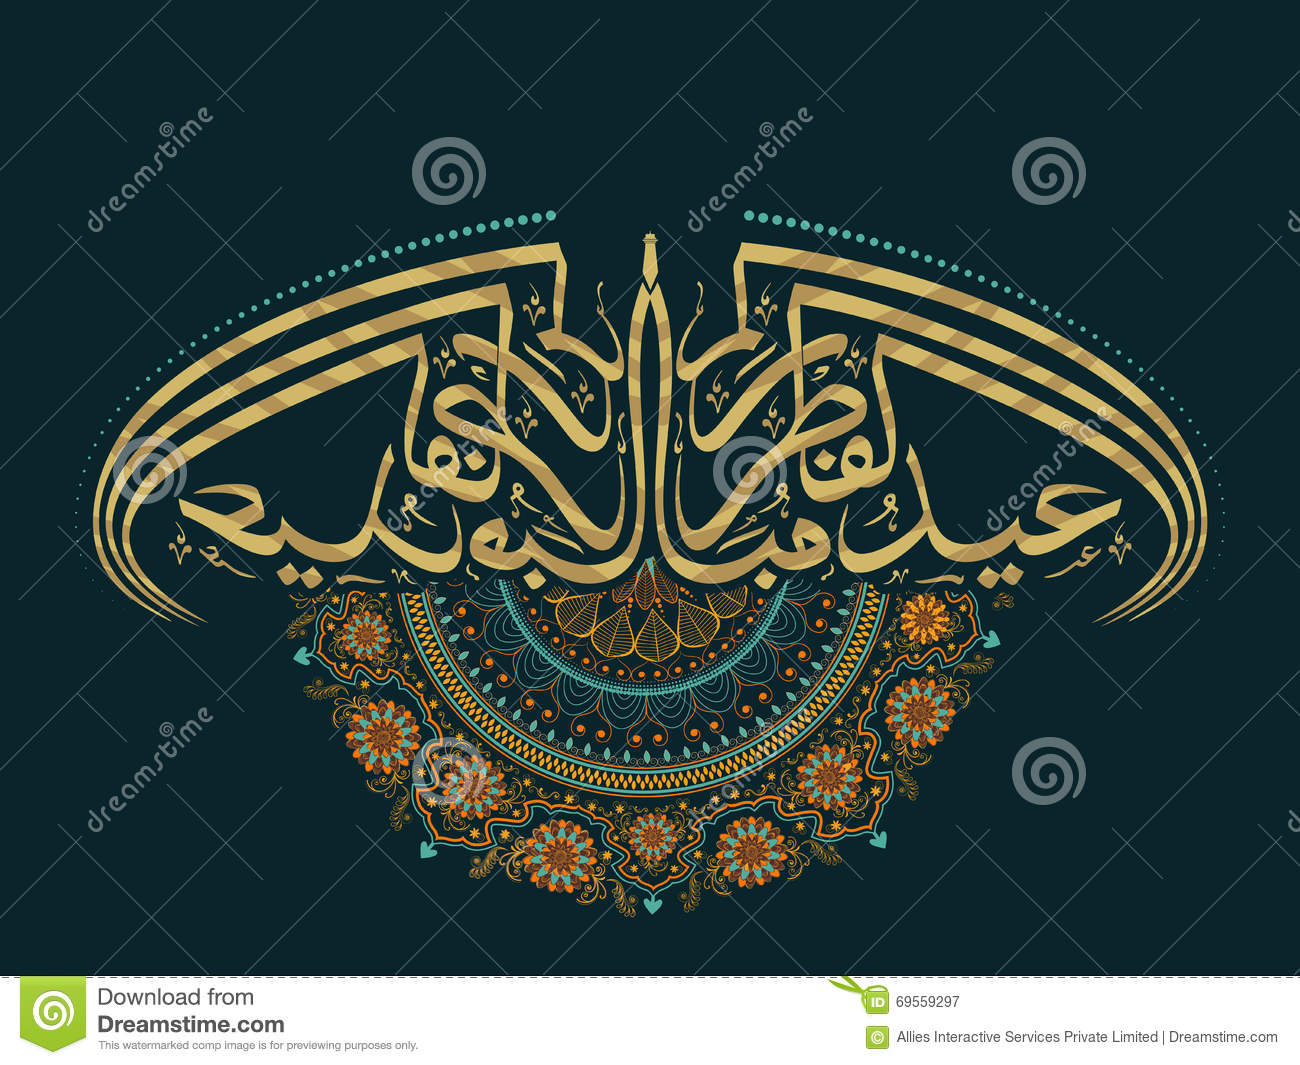 Beautiful Traditional Floral Design Decorated Arabic Islamic Calligraphy Of Text Eid Ul Fitr Mubarak For Muslim Community Festival Celebration